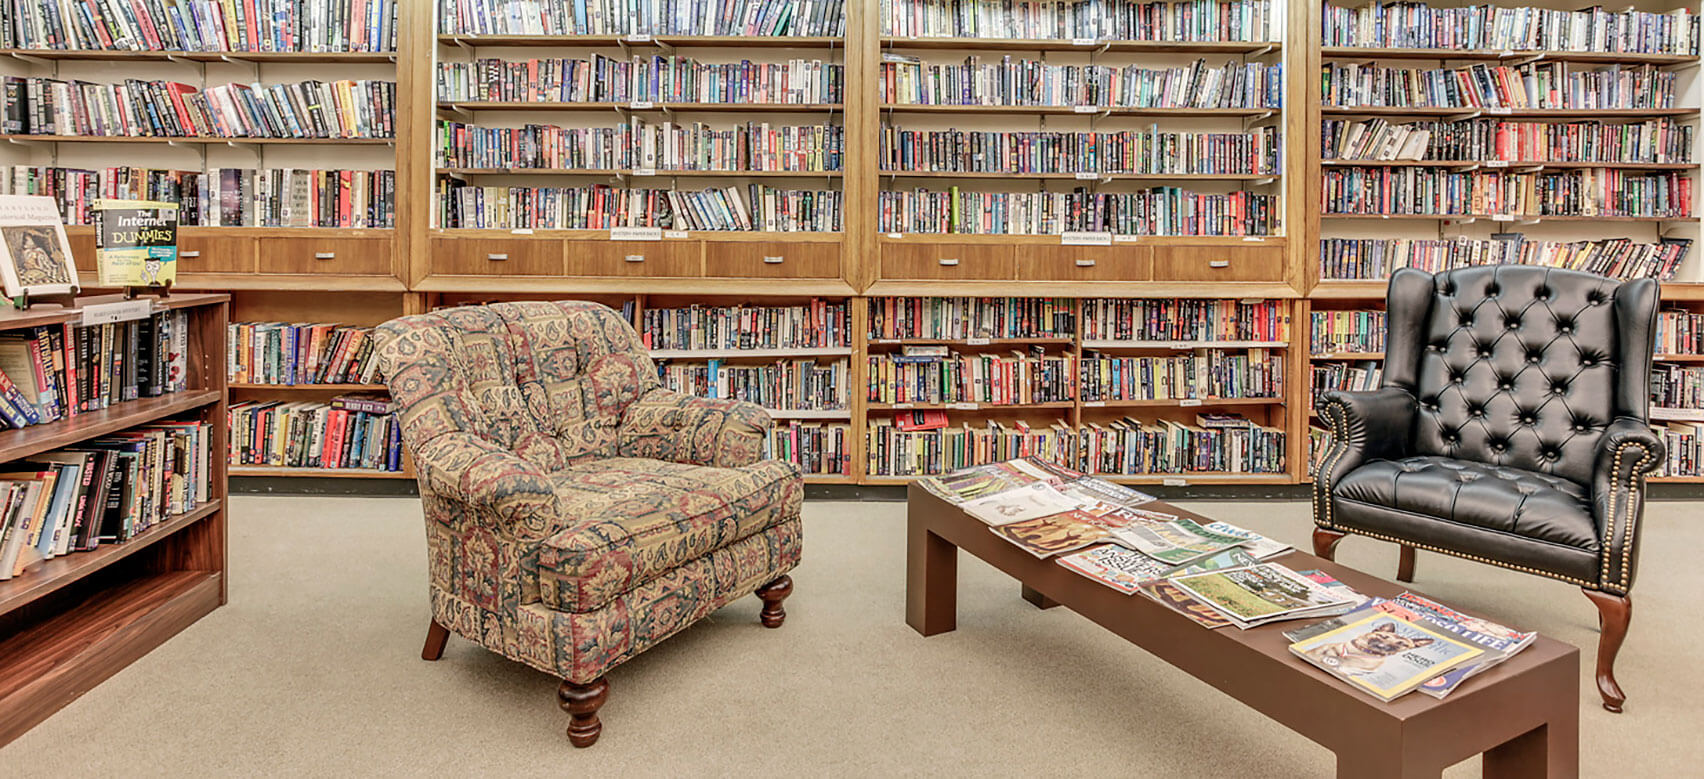 Photo: Library